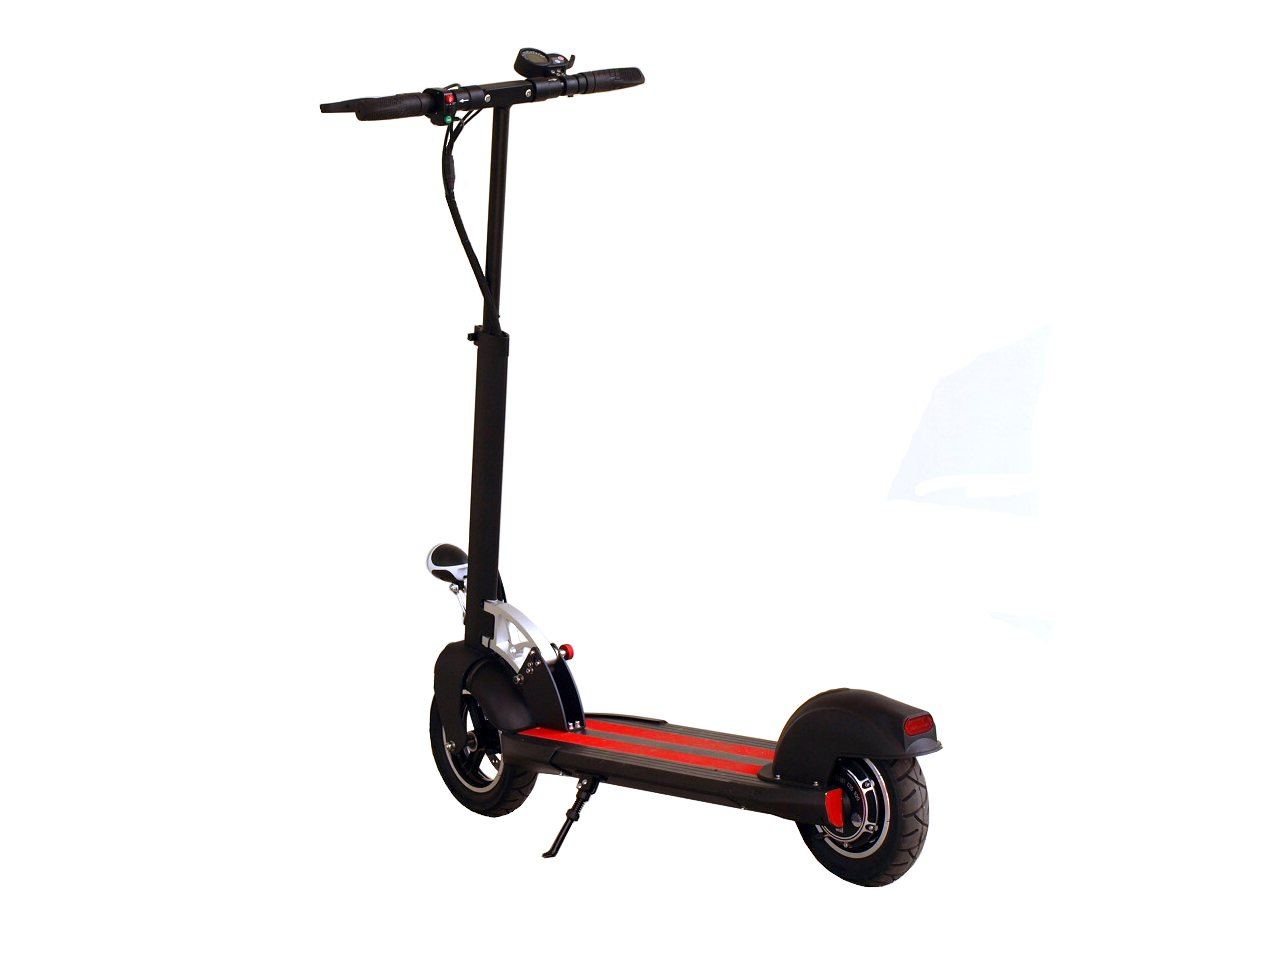 24 Hour Tire >> Electric scooter 36V 250W 8Ah Lithium ion battery